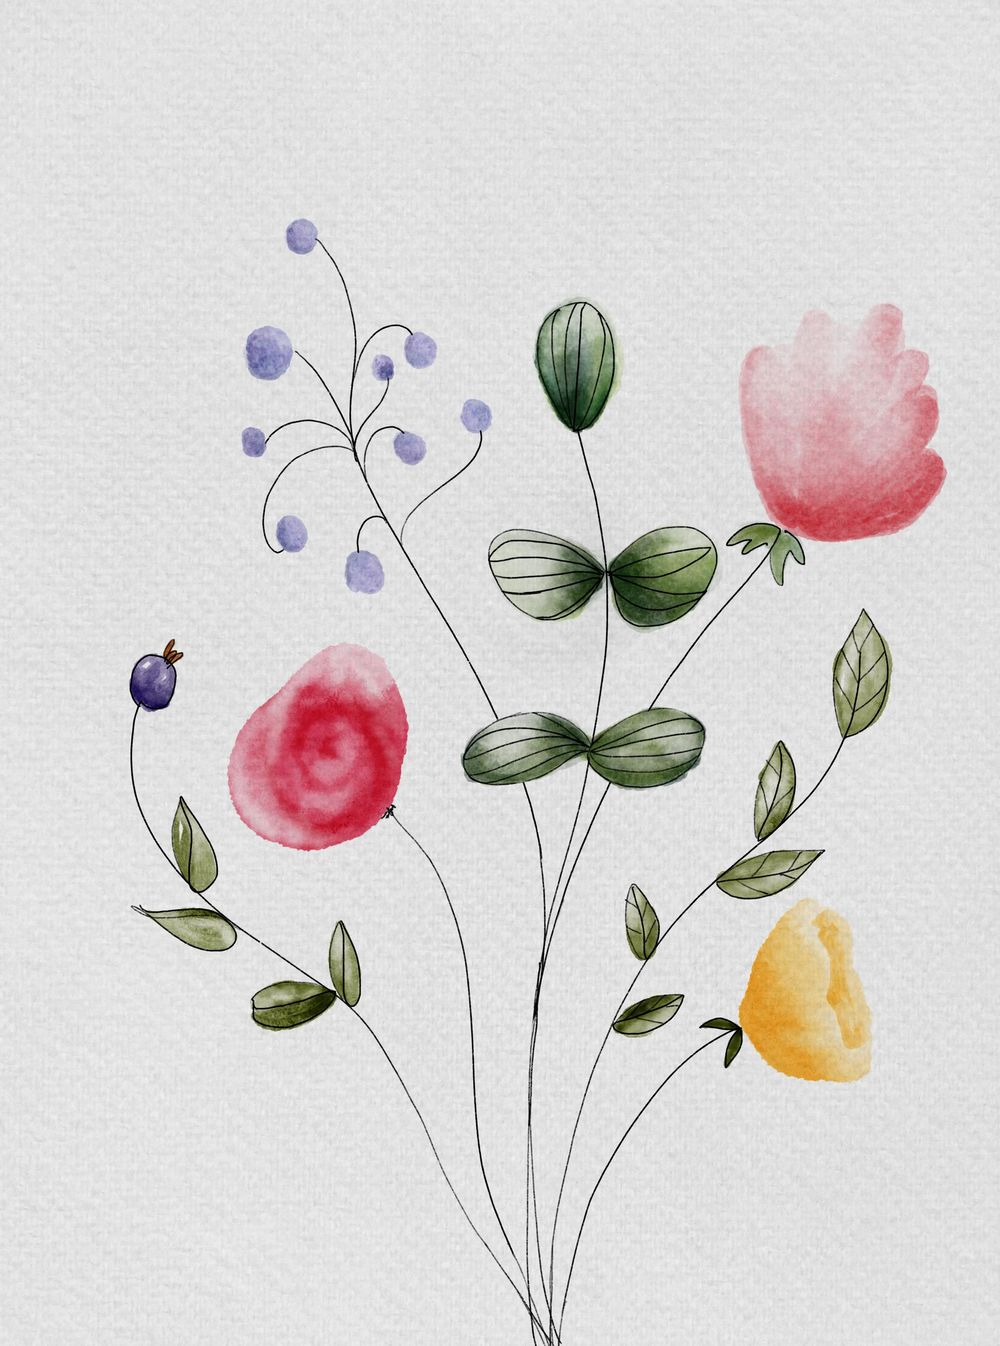 Flowers and watercolours - image 1 - student project